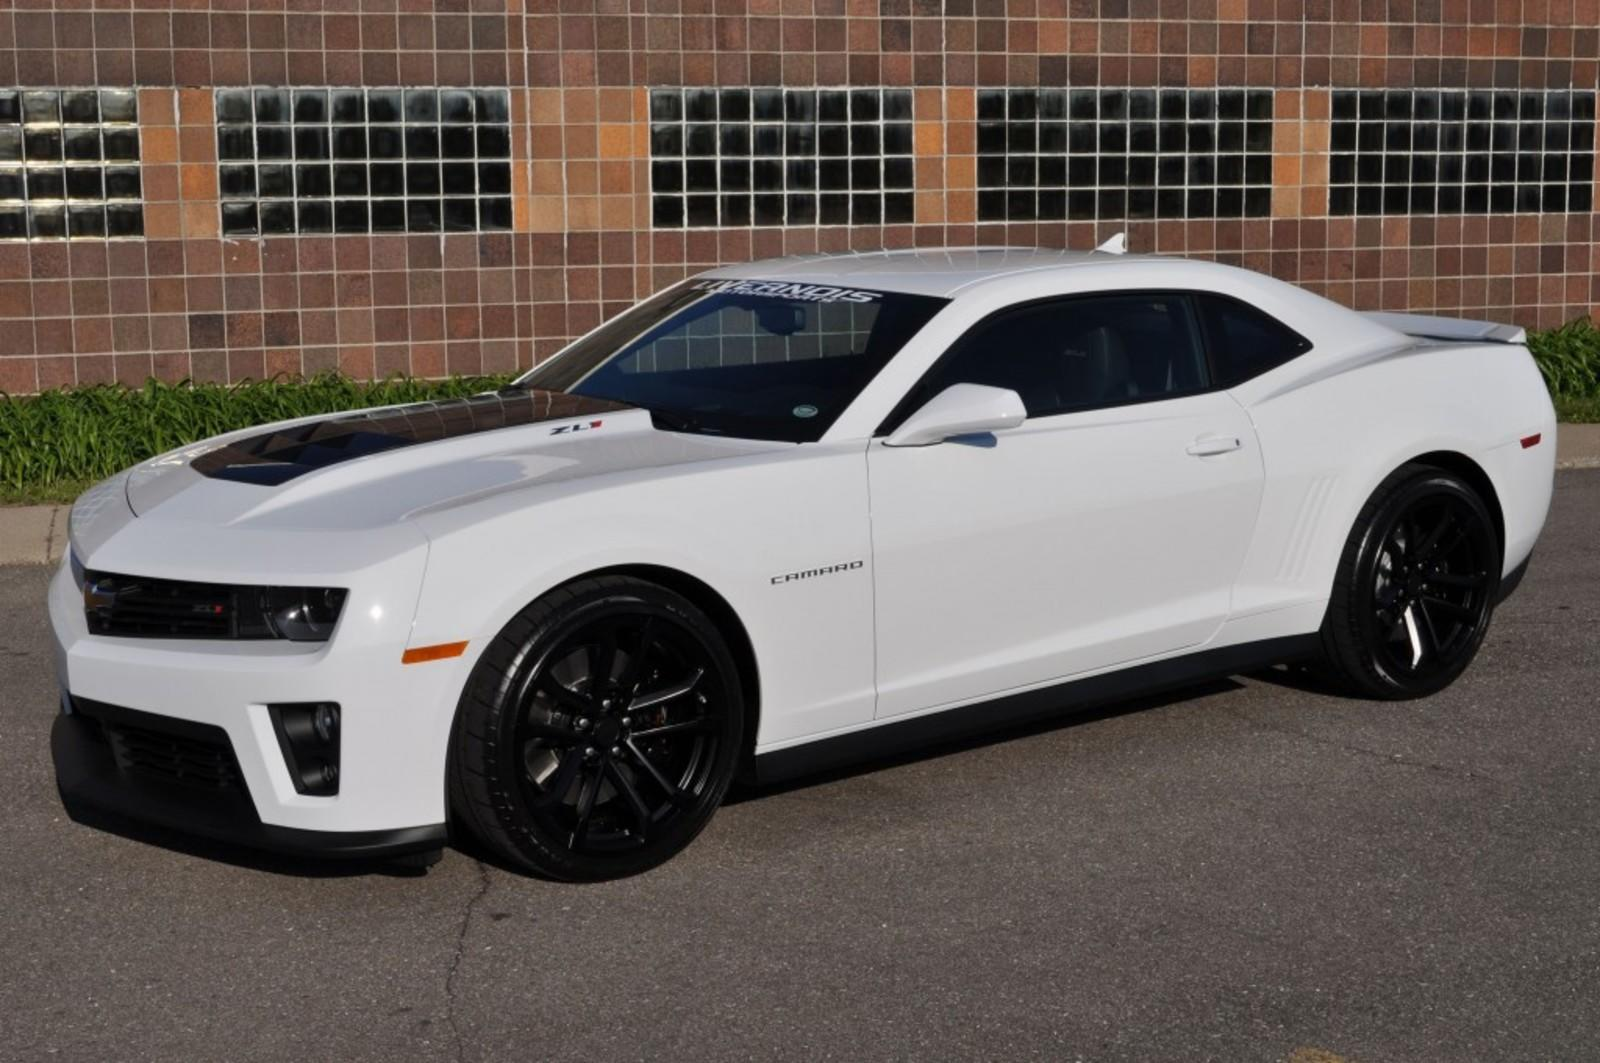 2013 Chevrolet Camaro Zl1 By Livernois Motorsports Review Top Speed